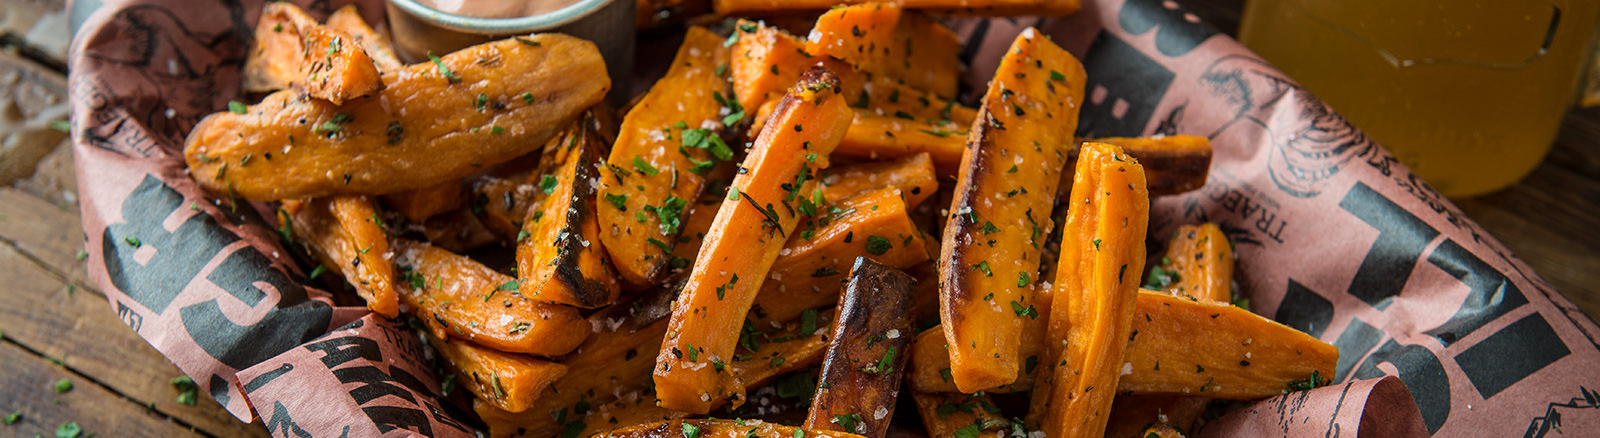 Sweet Potato Steak Fries Traeger Wood Fired Grills